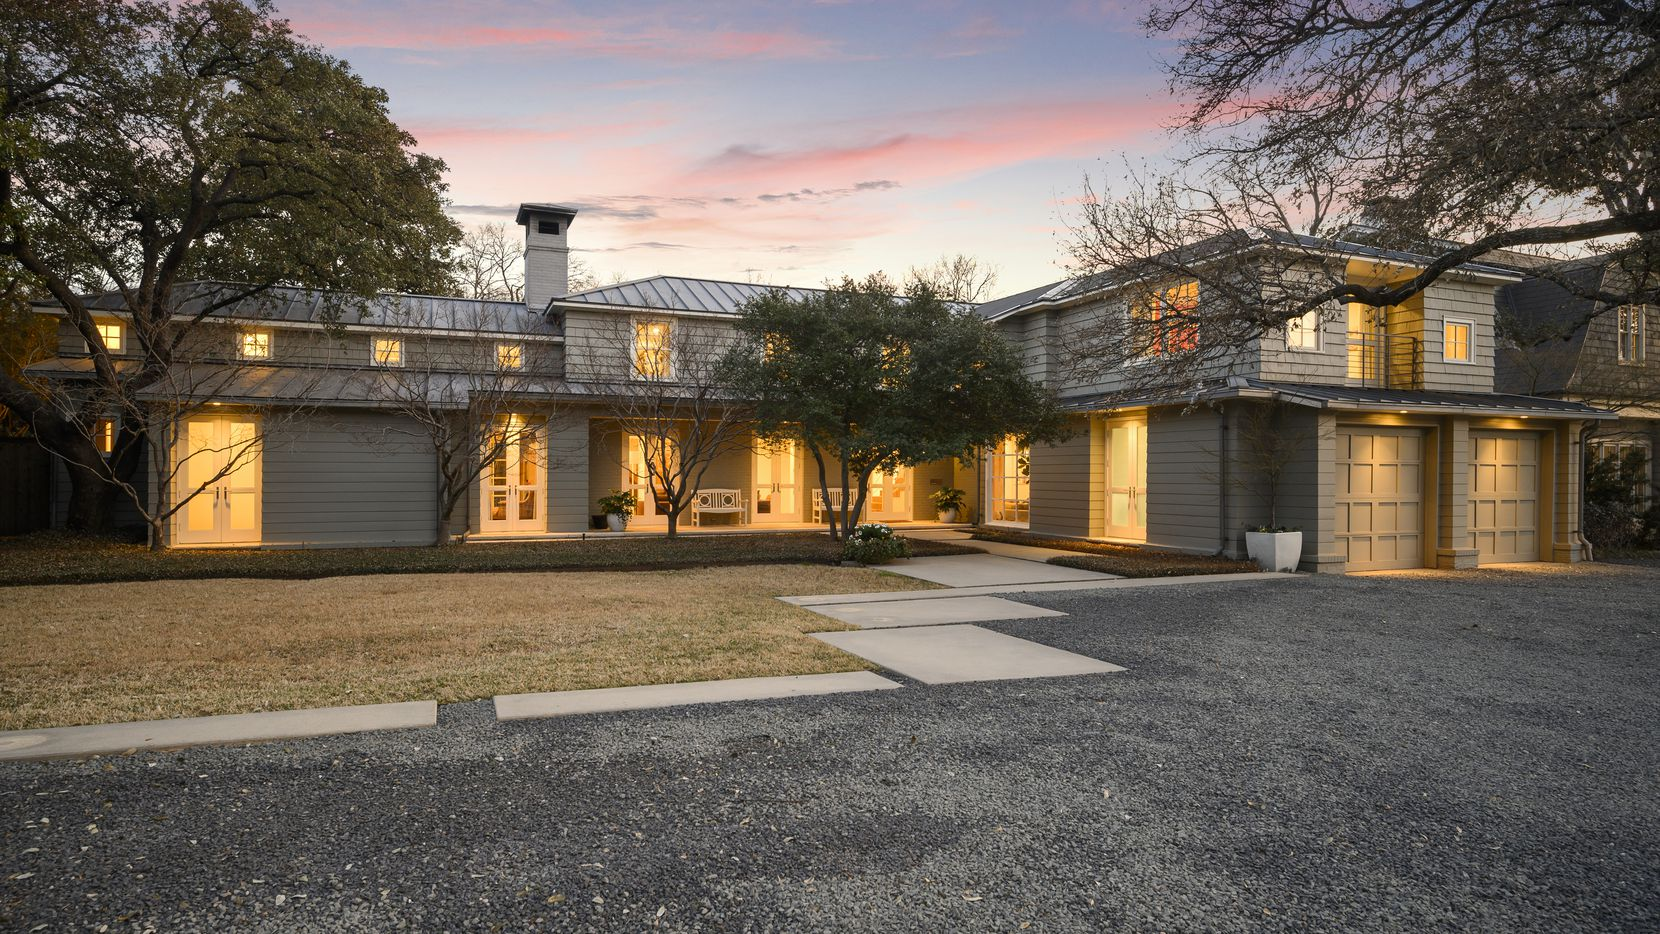 Take a look at the home at 5362 Wenonah Drive in Dallas.